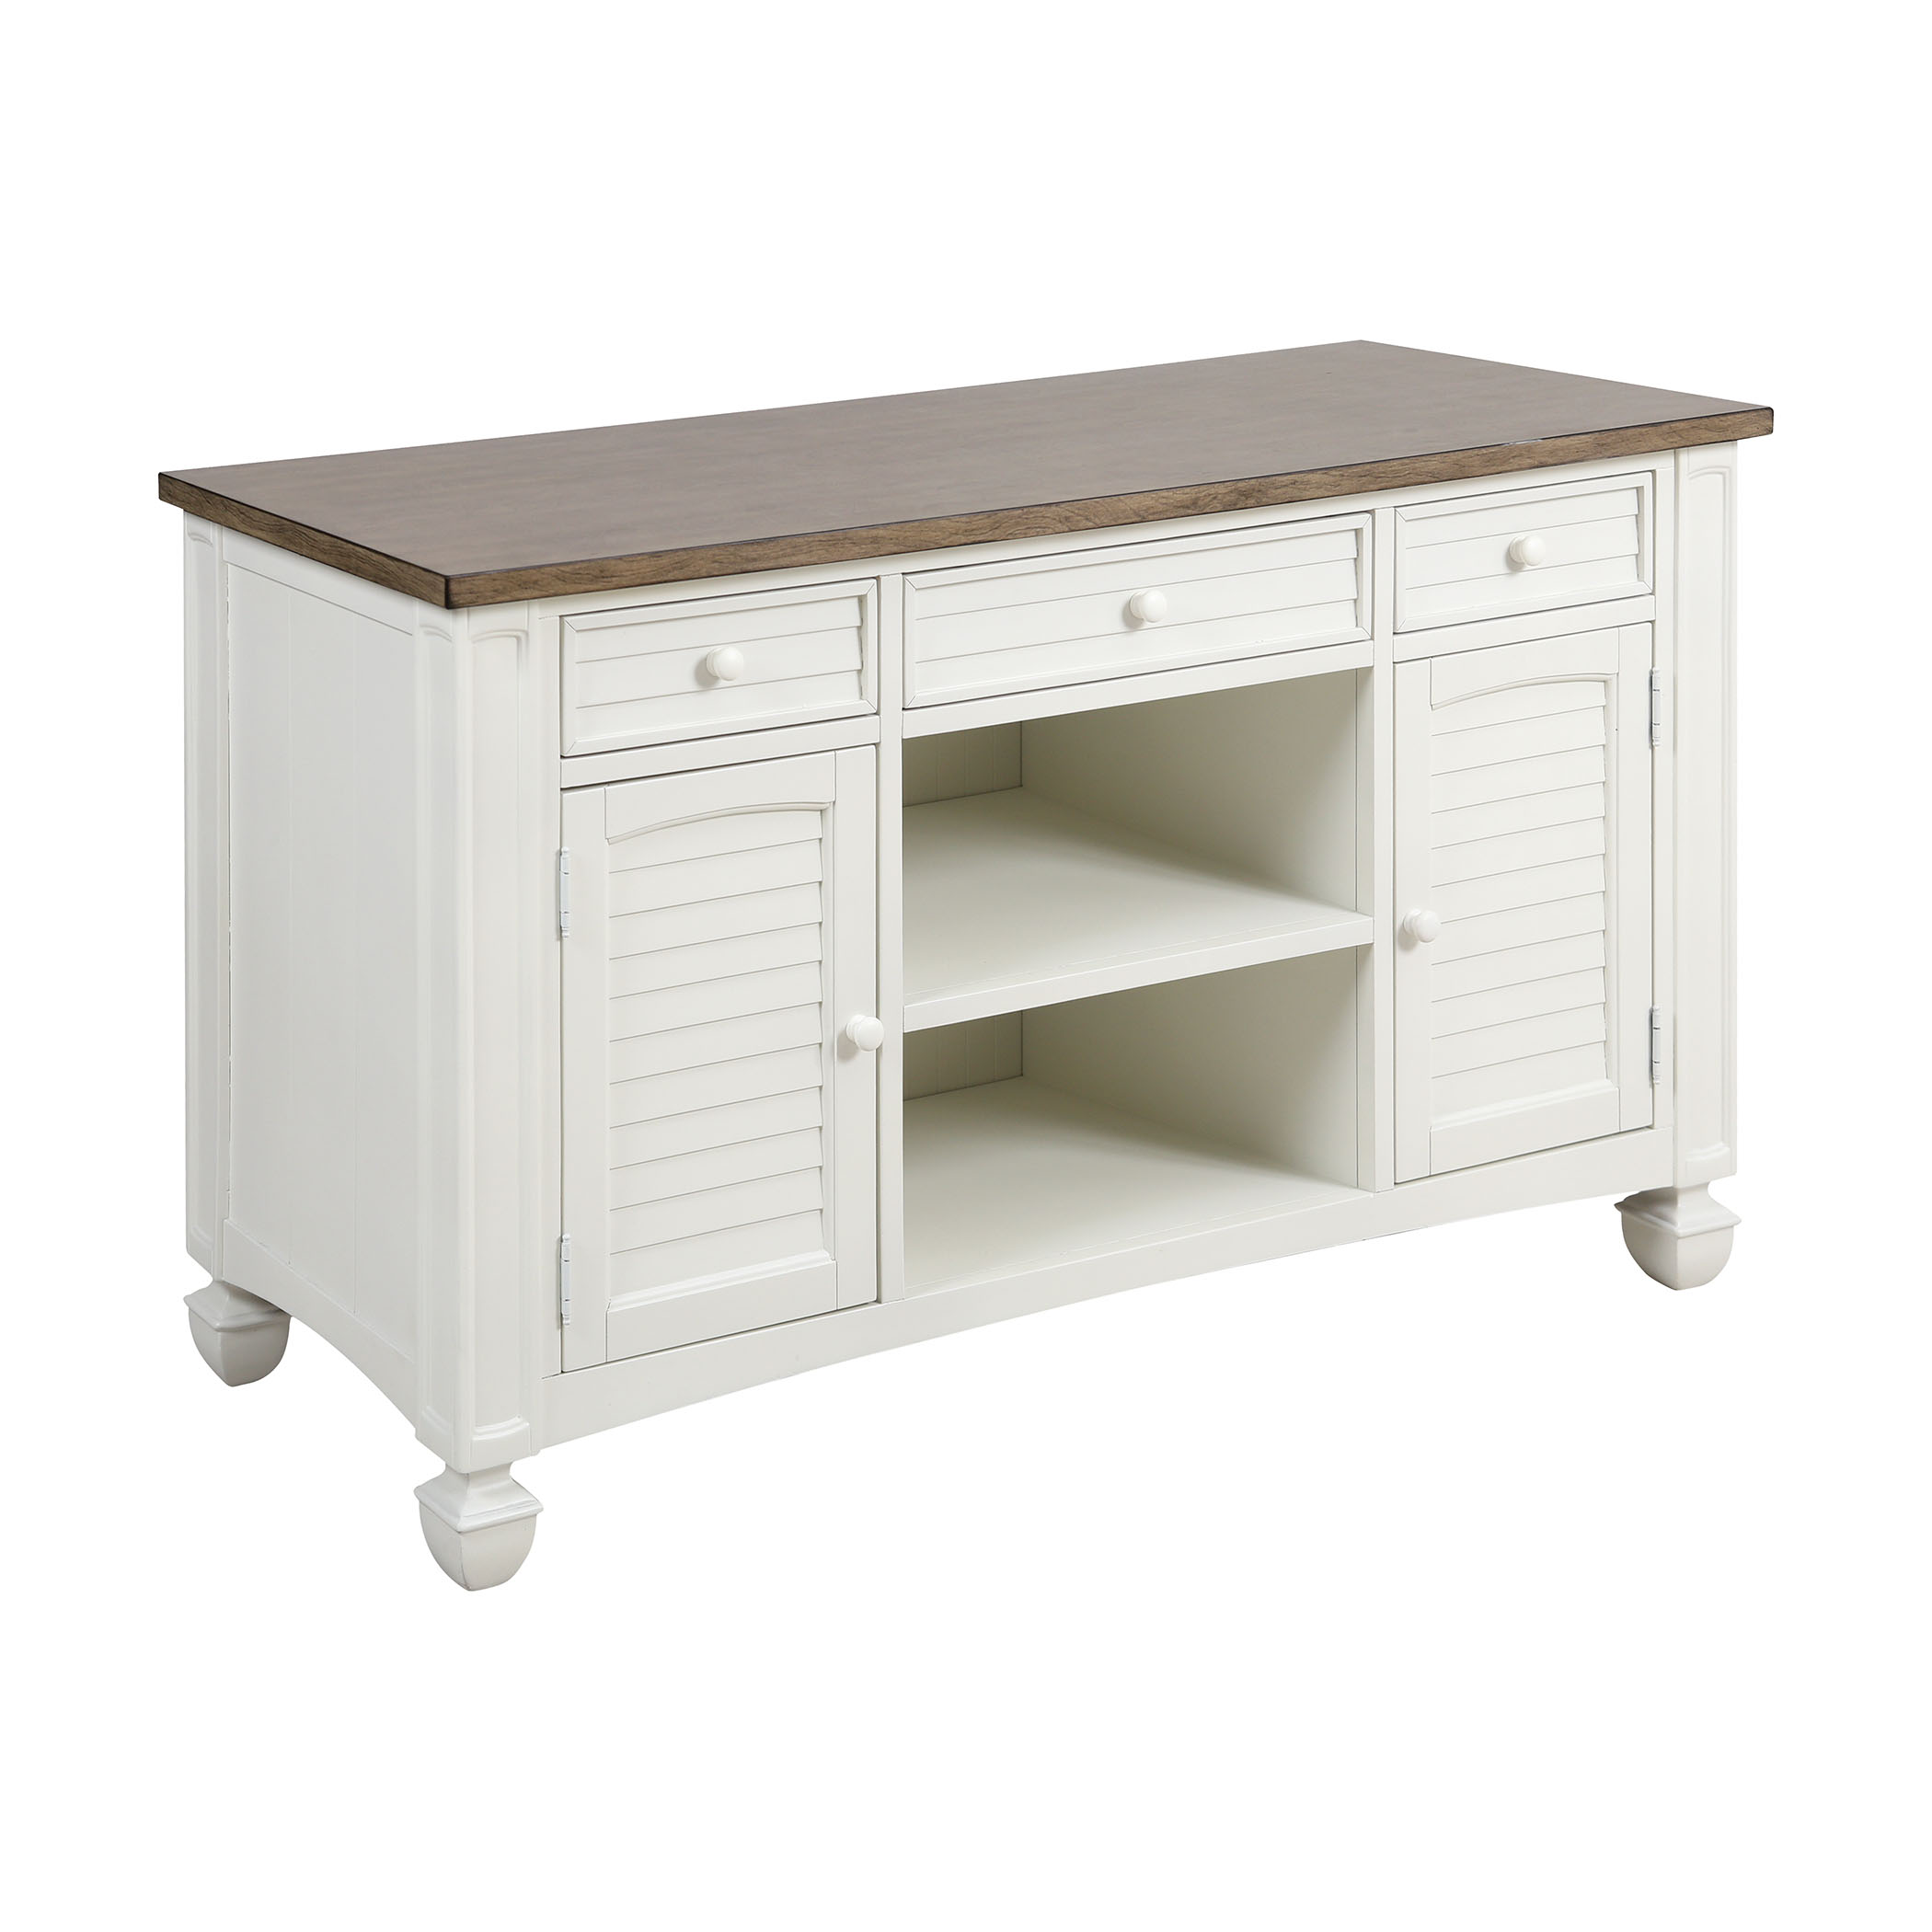 Nantucket 2-Door 3-Drawer Console Table in Off-White with Brown-Grey Top 473-031 | ELK Home